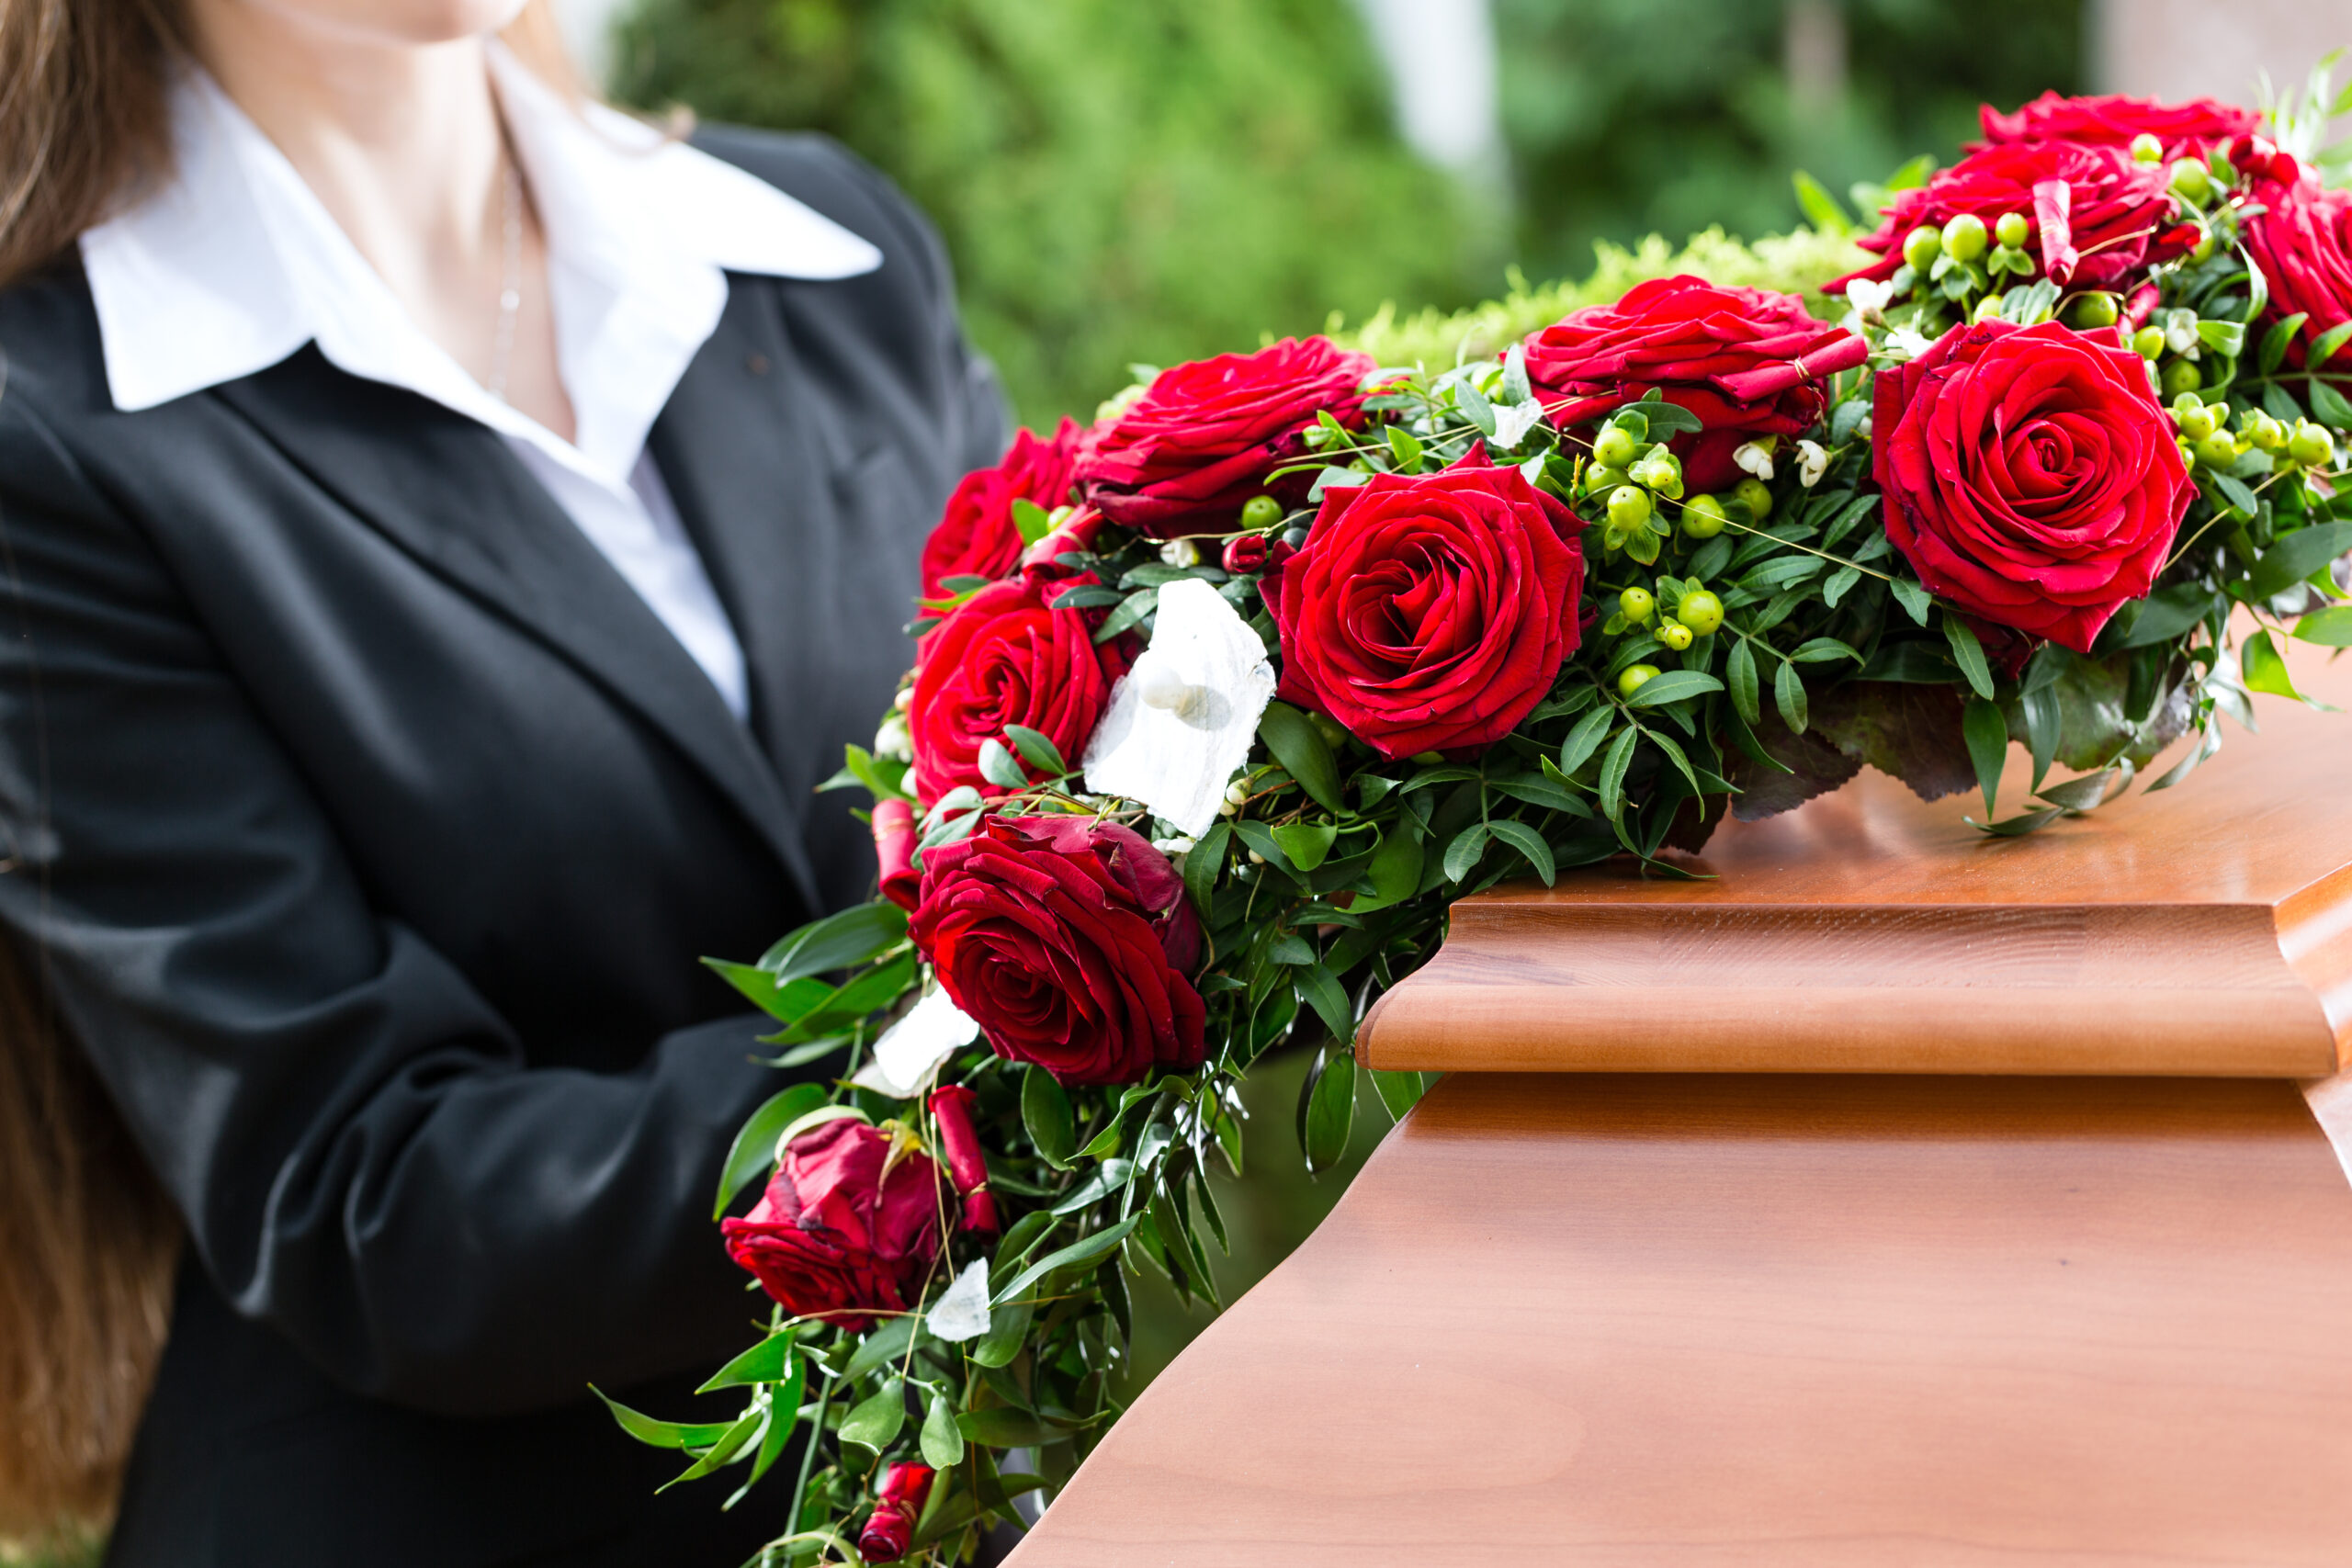 Photo of woman holding rose floral arrangement at a funeral